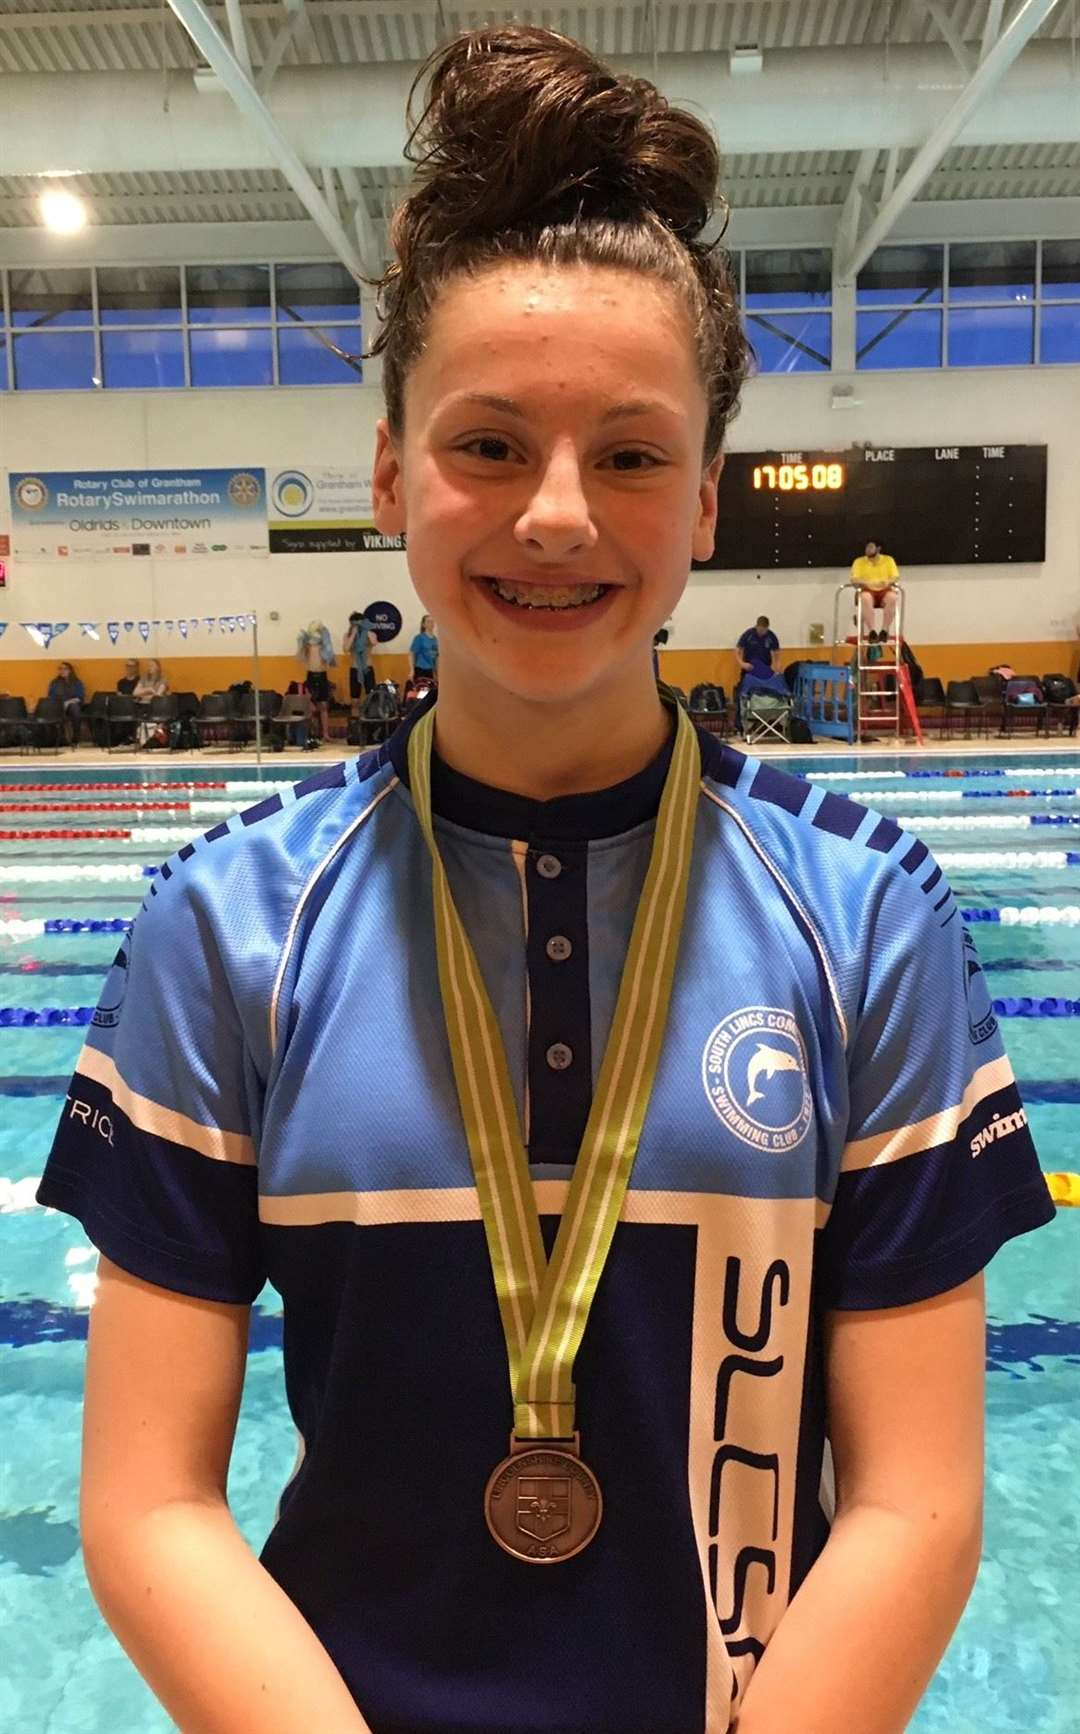 South Lincs Competitive Swimming Club medallists Beatrice Finch.Photo supplied.